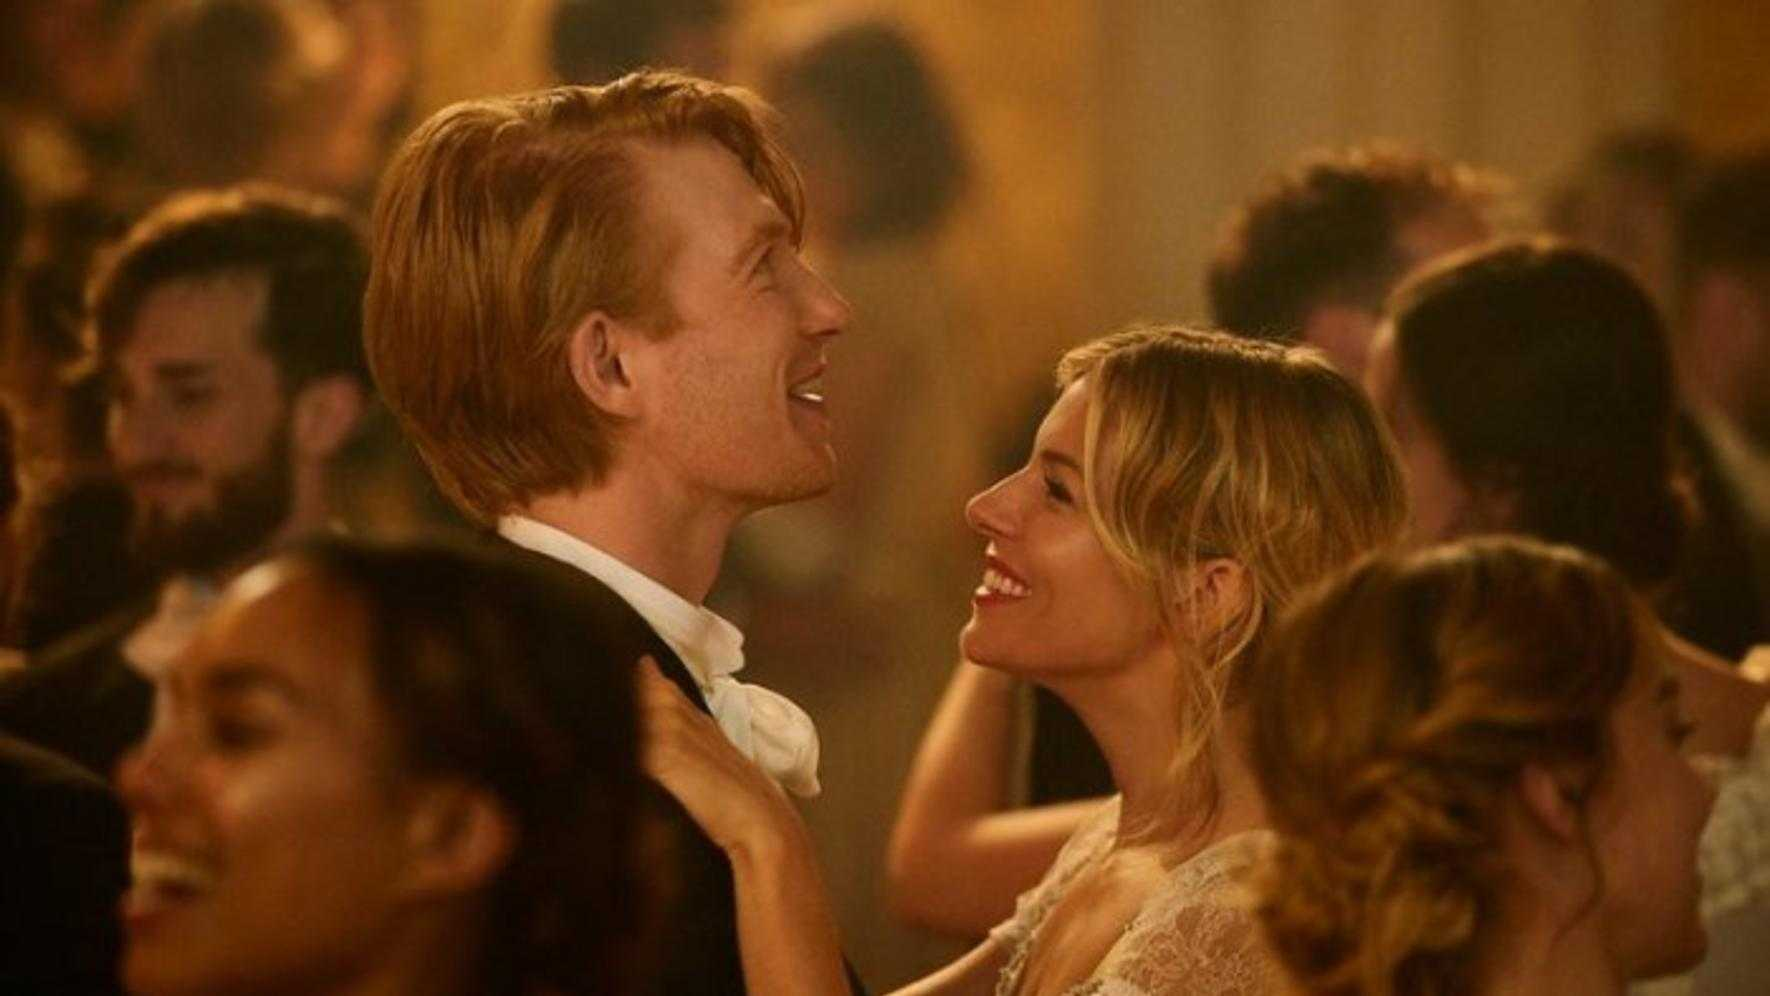 The Tale of Thomas Burberry Sienna Miller